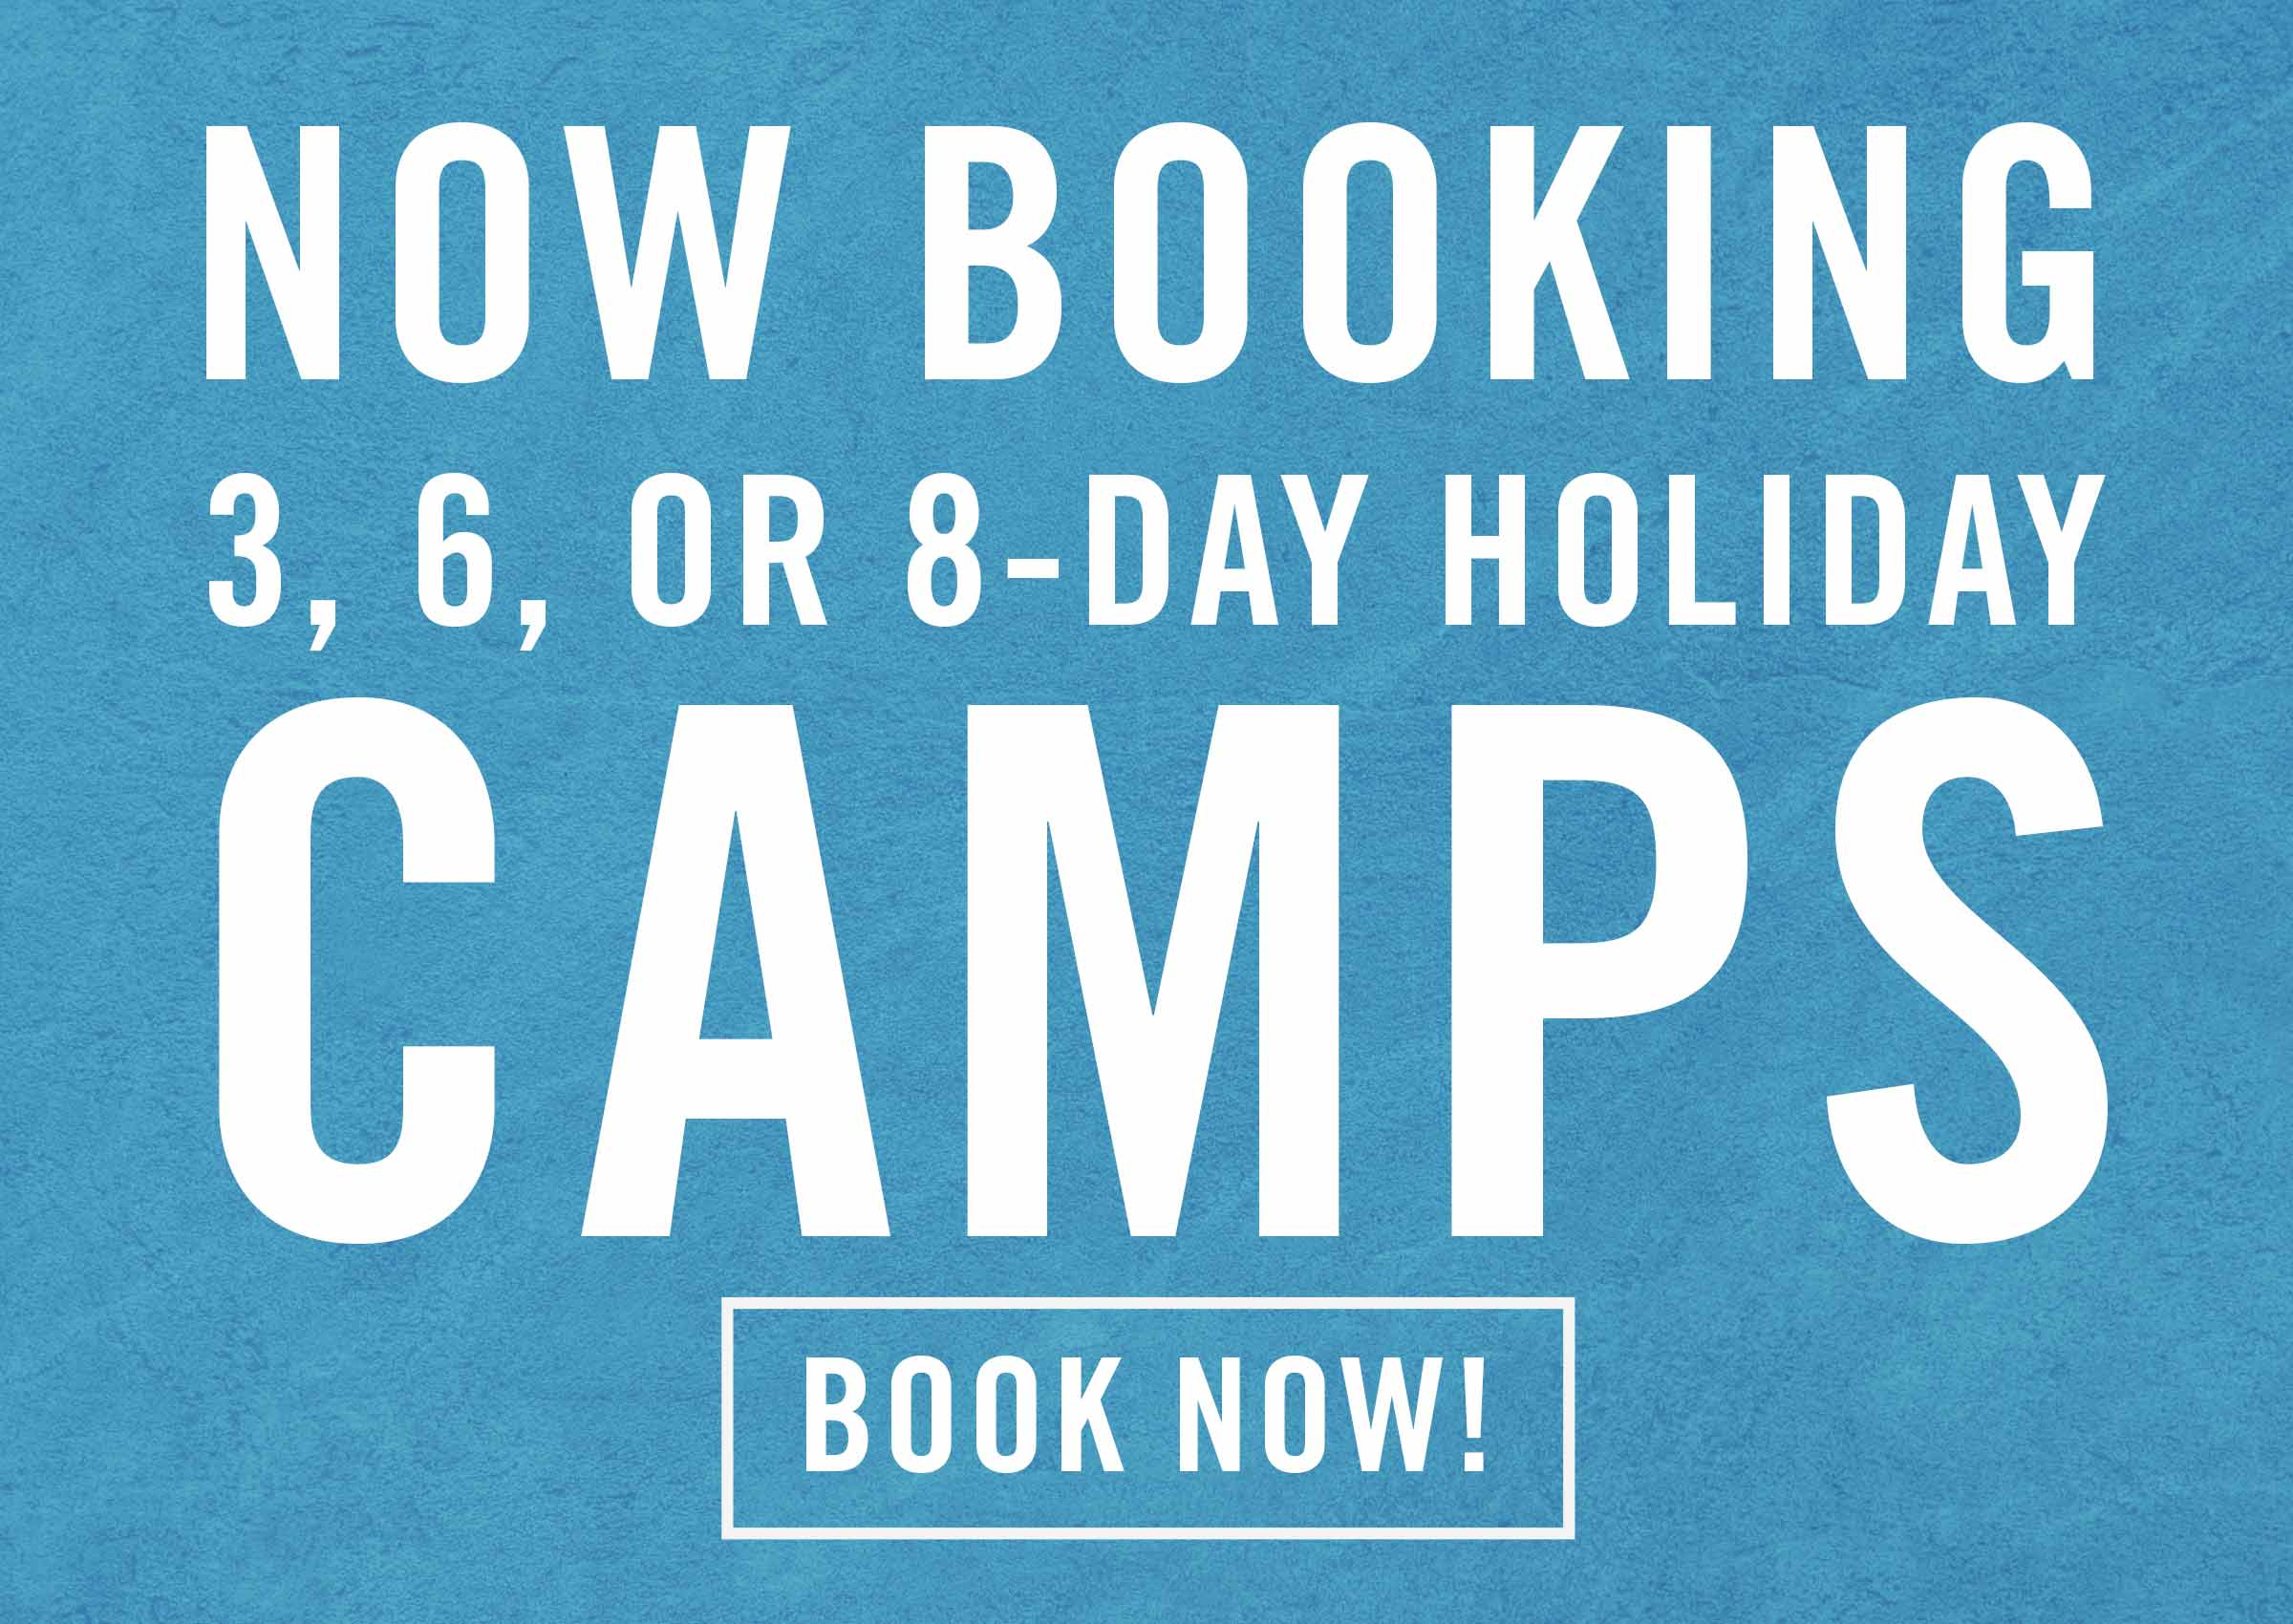 Now booking winter and holiday camps